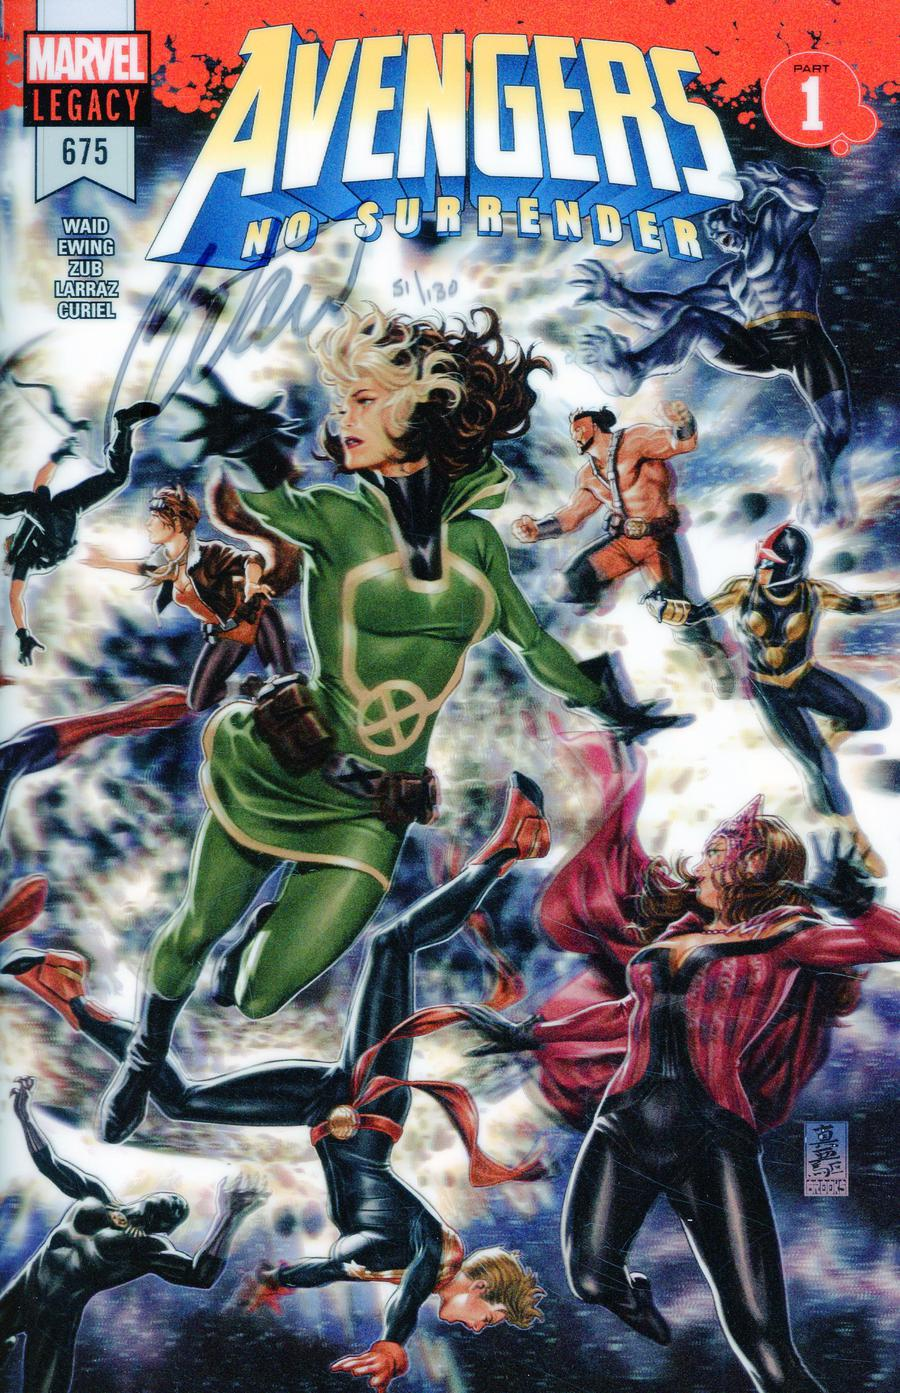 Avengers Vol 6 #675 Cover L DF Silver Signature Series Signed By Mark Waid (No Surrender Part 1)(Marvel Legacy Tie-In)